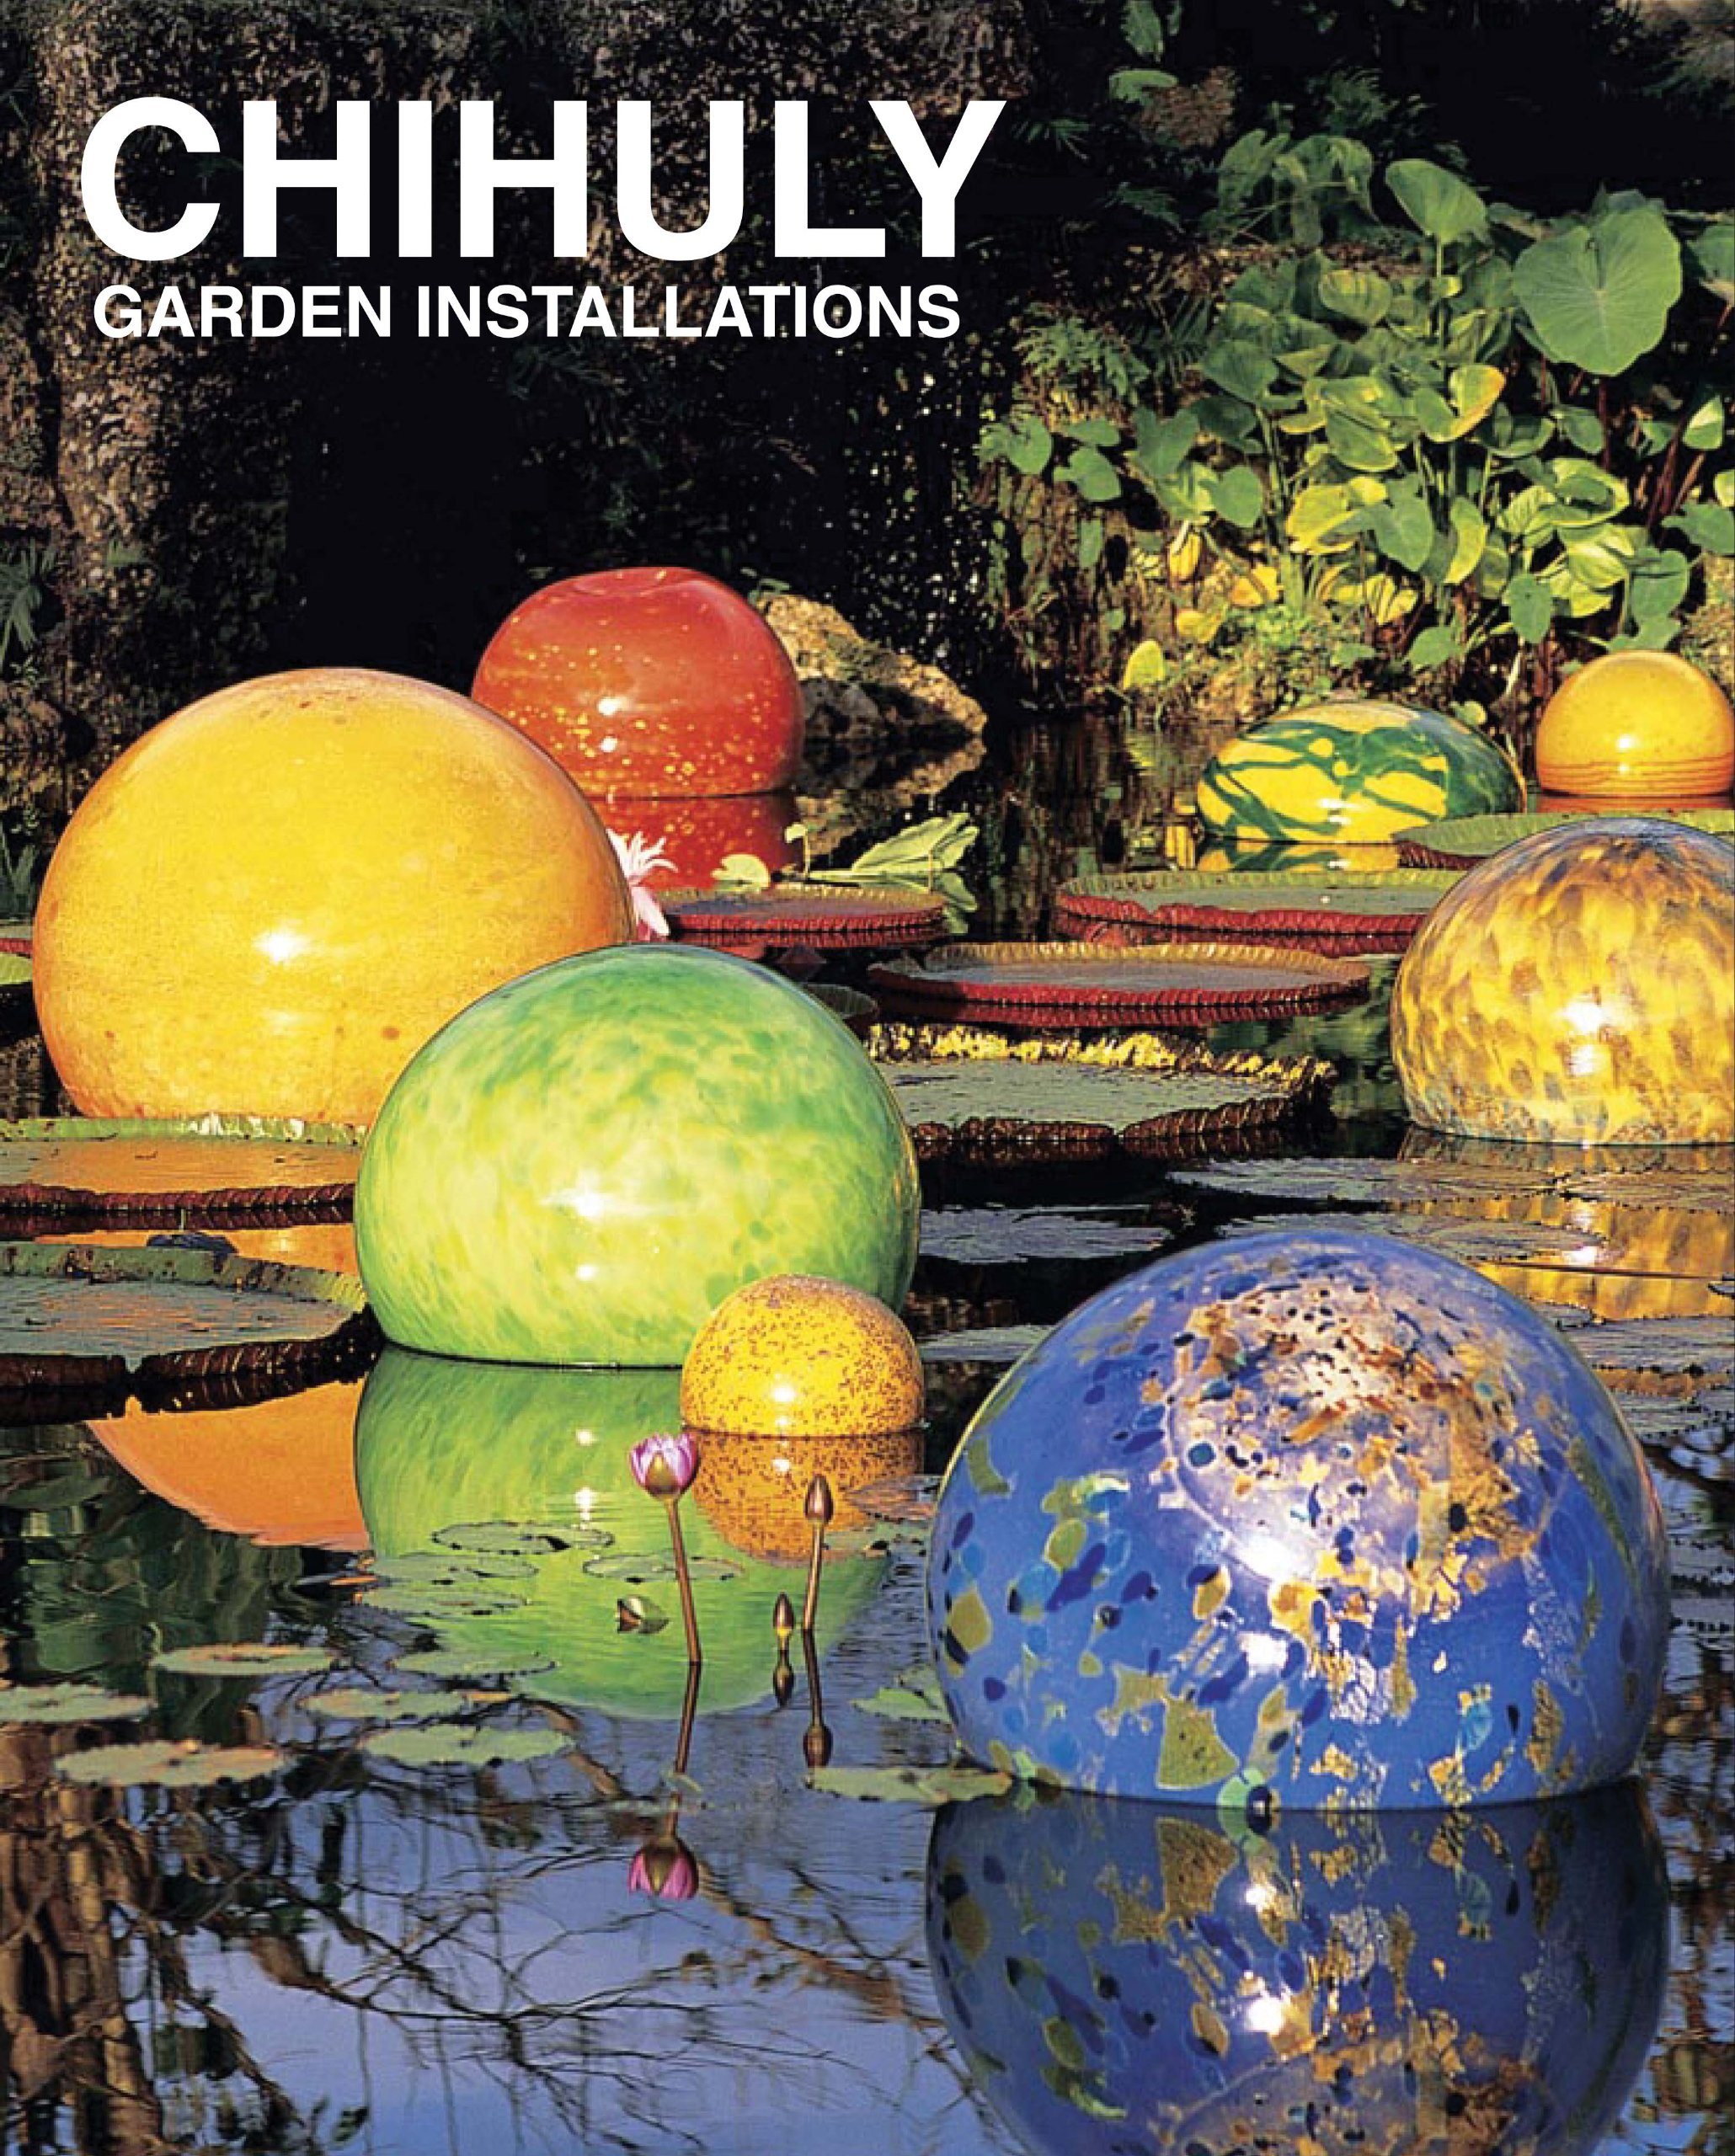 Chihuly Garden Installations by Harry N. Abrams